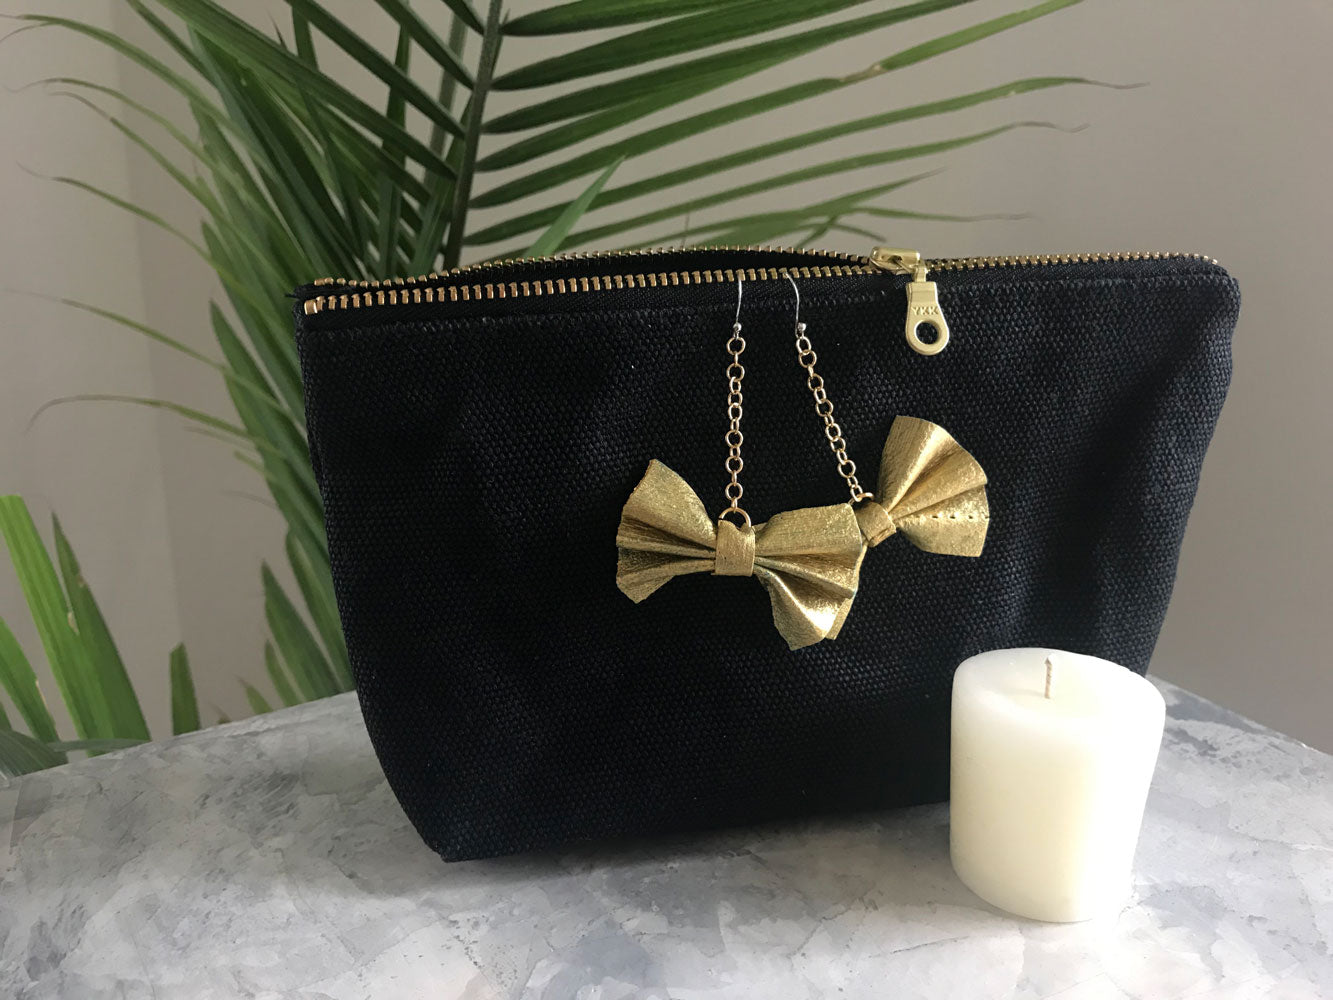 black zipper pouch with gold painted leather bow on gold chain earrings with beeswax votive candle on marble surface with fern plan in the background